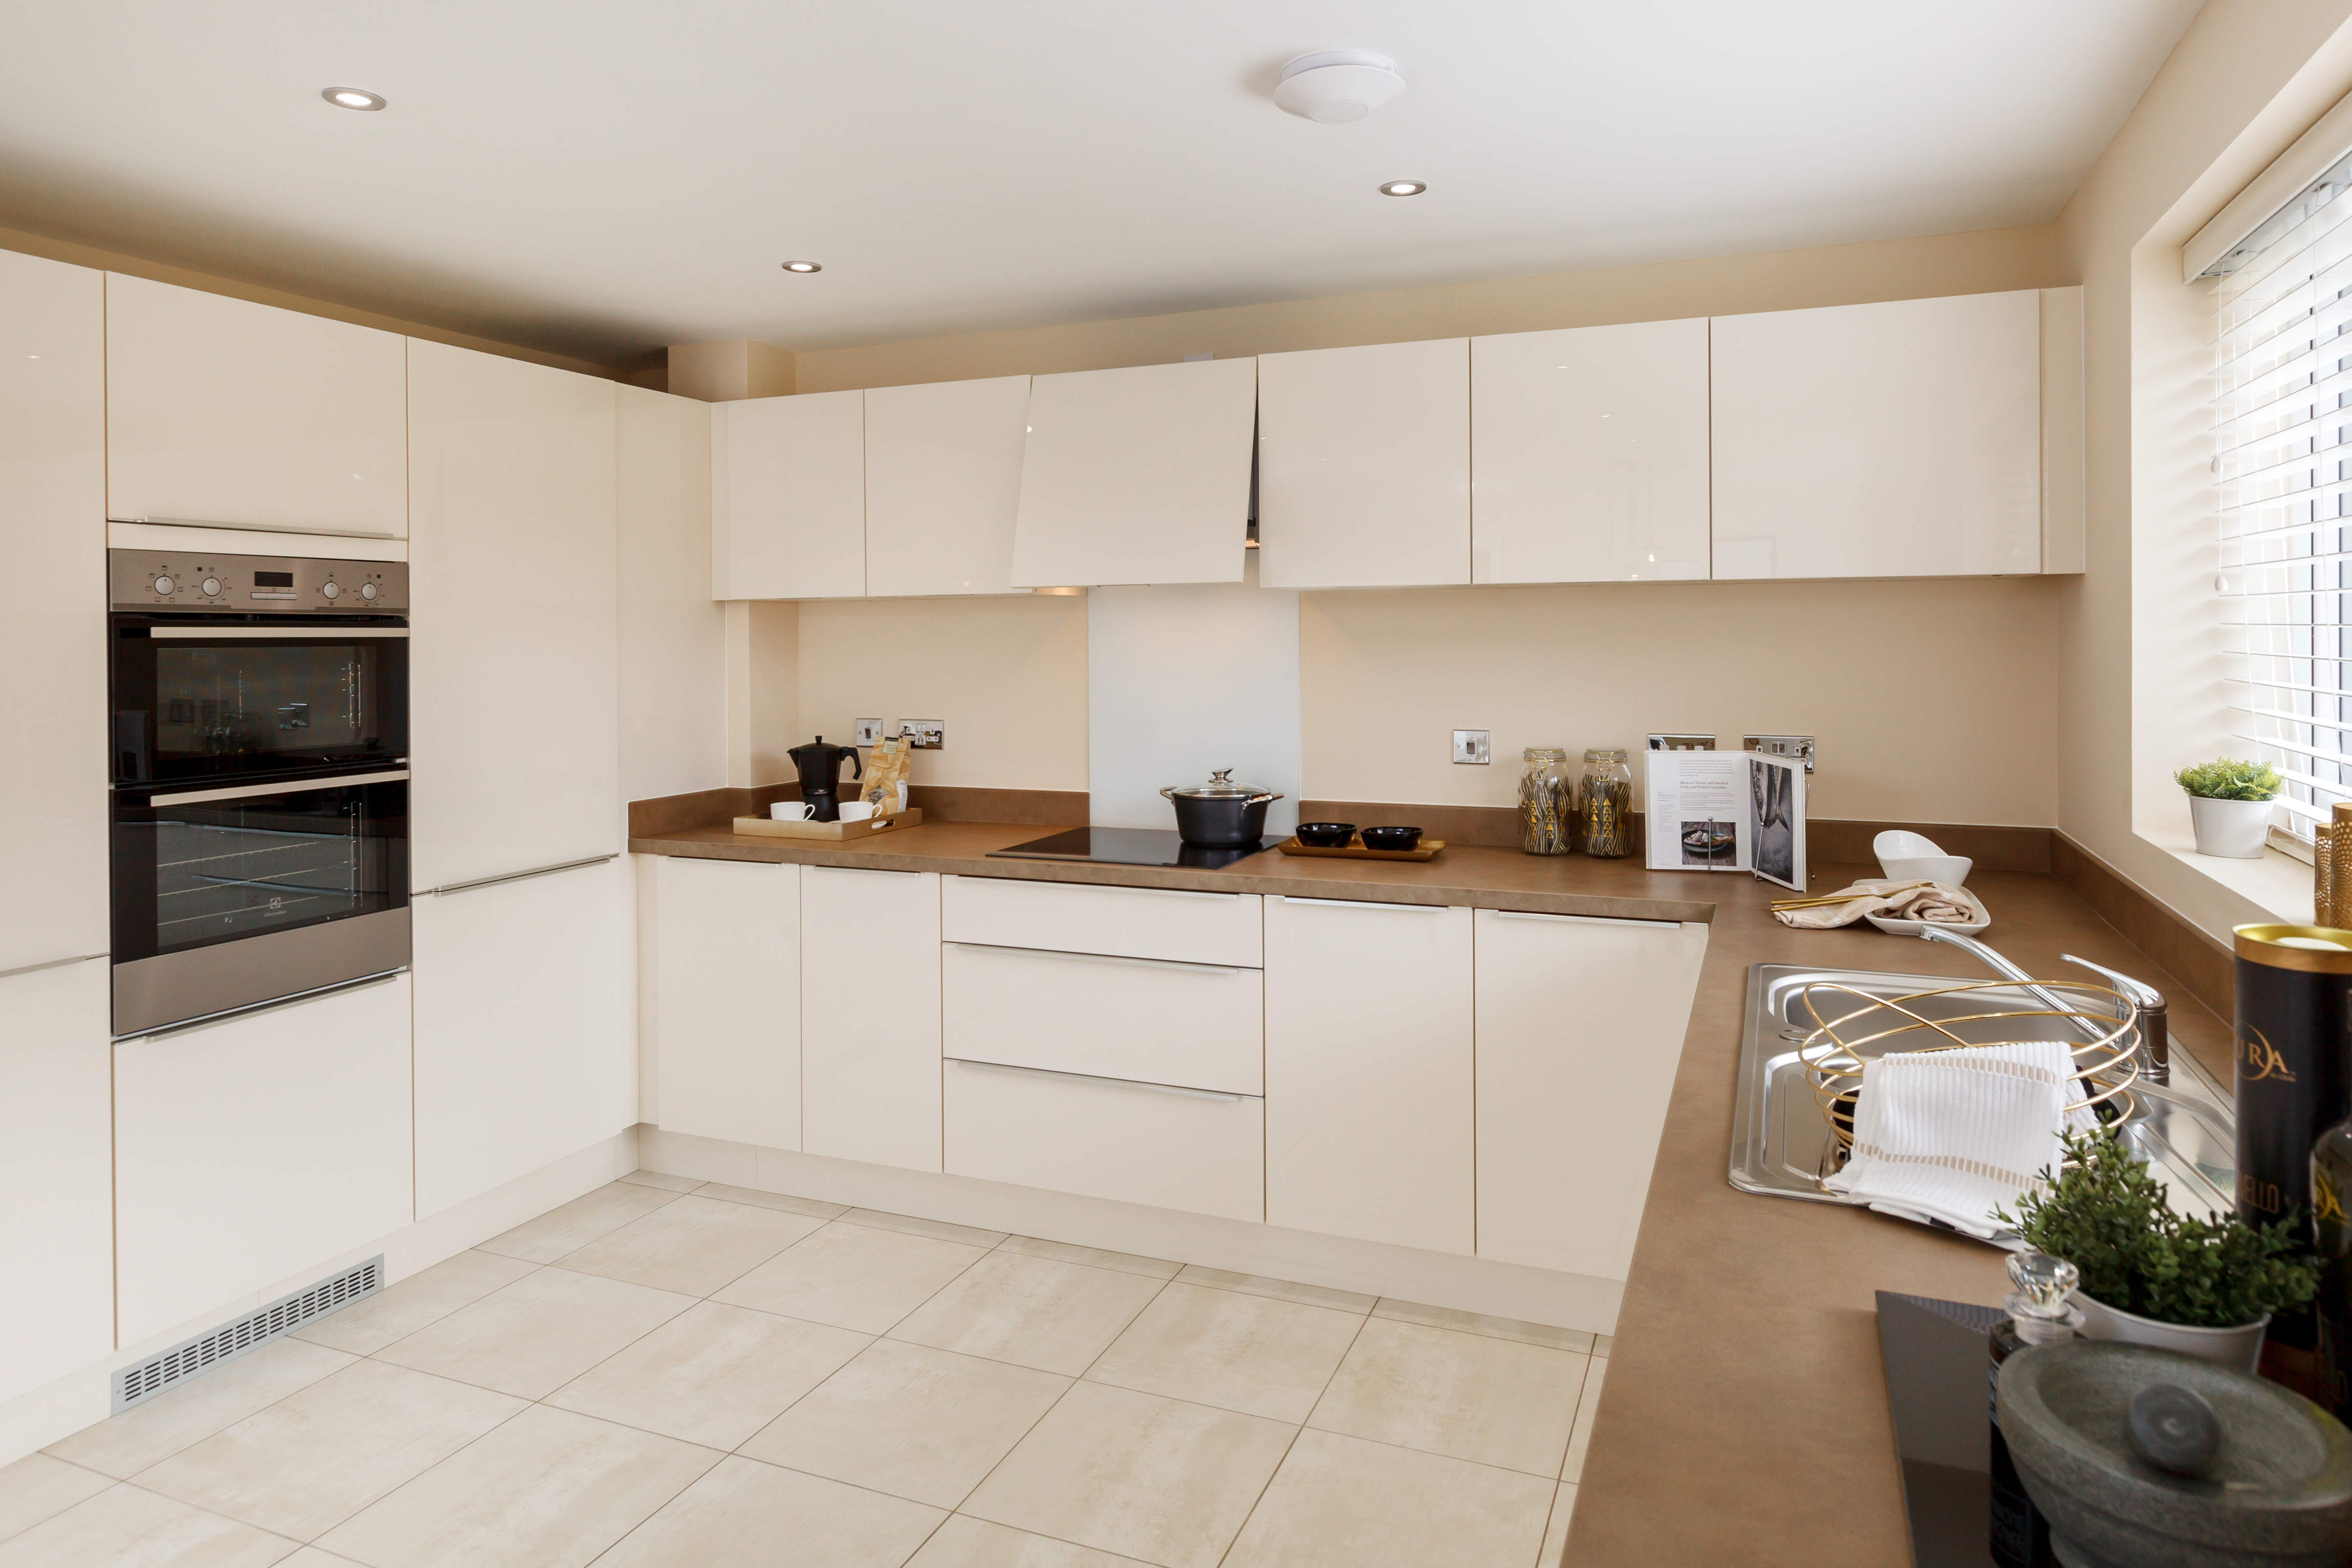 TW_NM_The Shires_Haddenham_441_Kitchen 2